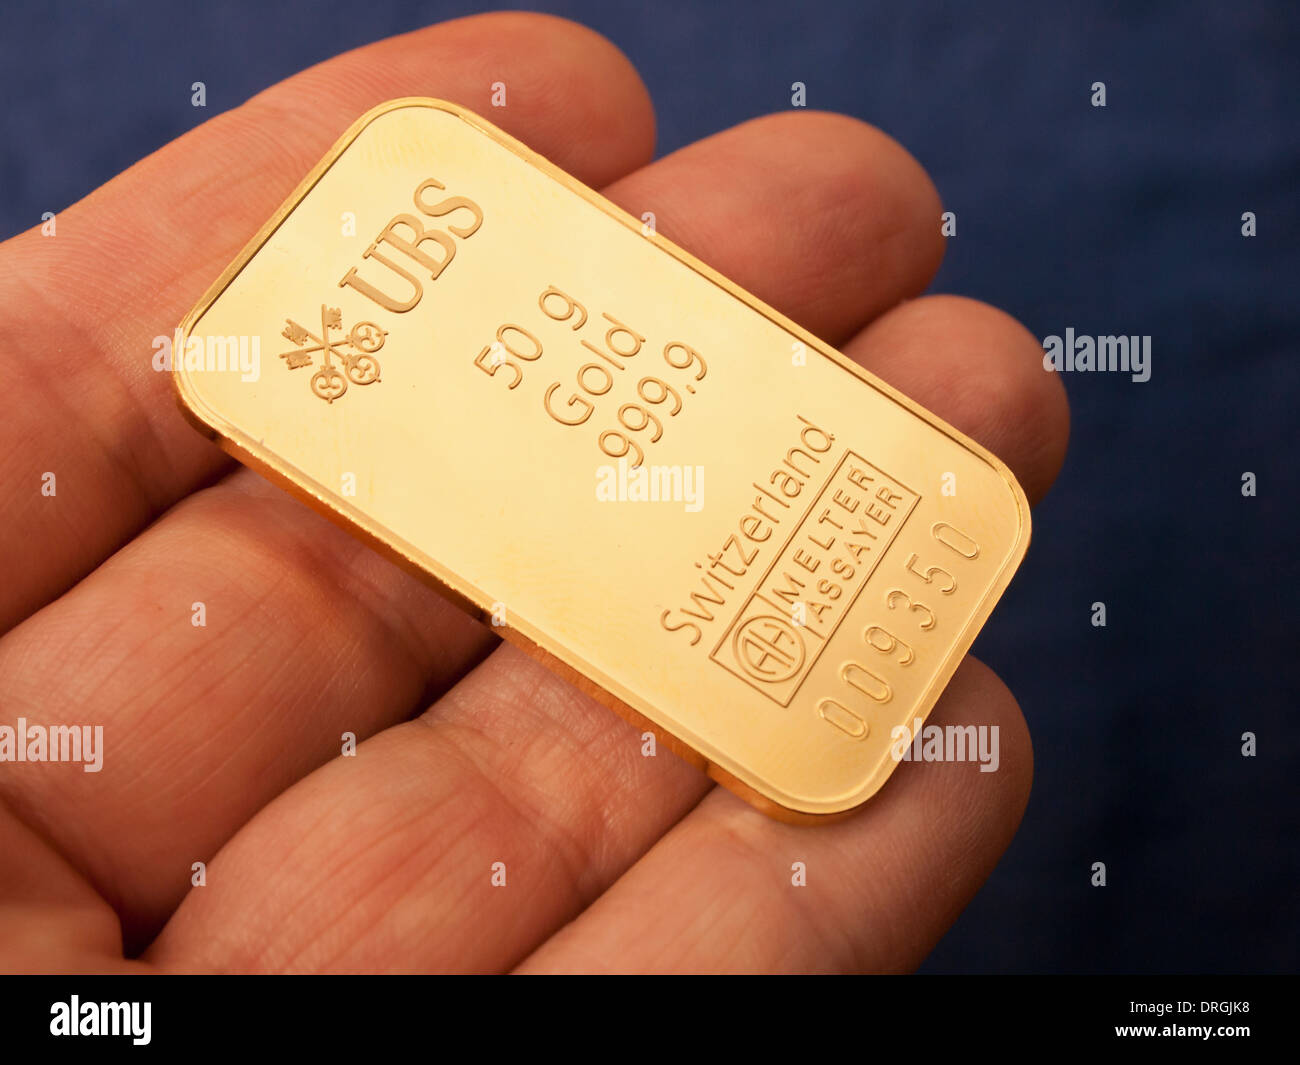 A 50g gold ingot issued by the swiss bank ubs stock photo a 50g gold ingot issued by the swiss bank ubs buycottarizona Image collections